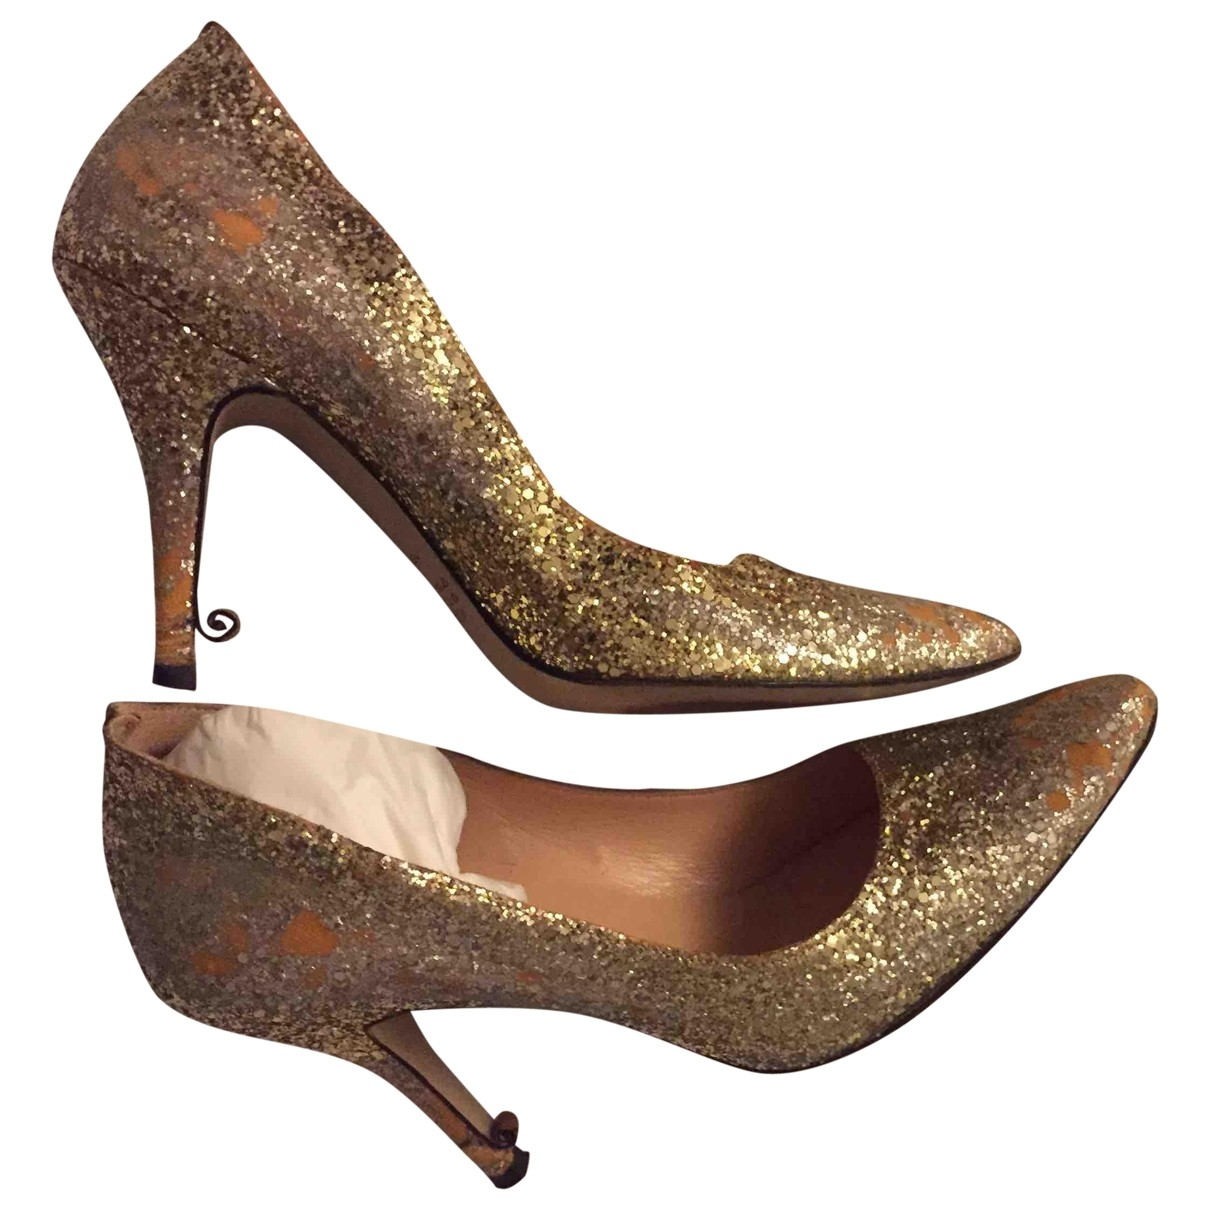 Maison Martin Margiela \N Gold Glitter Heels for Women 39 EU